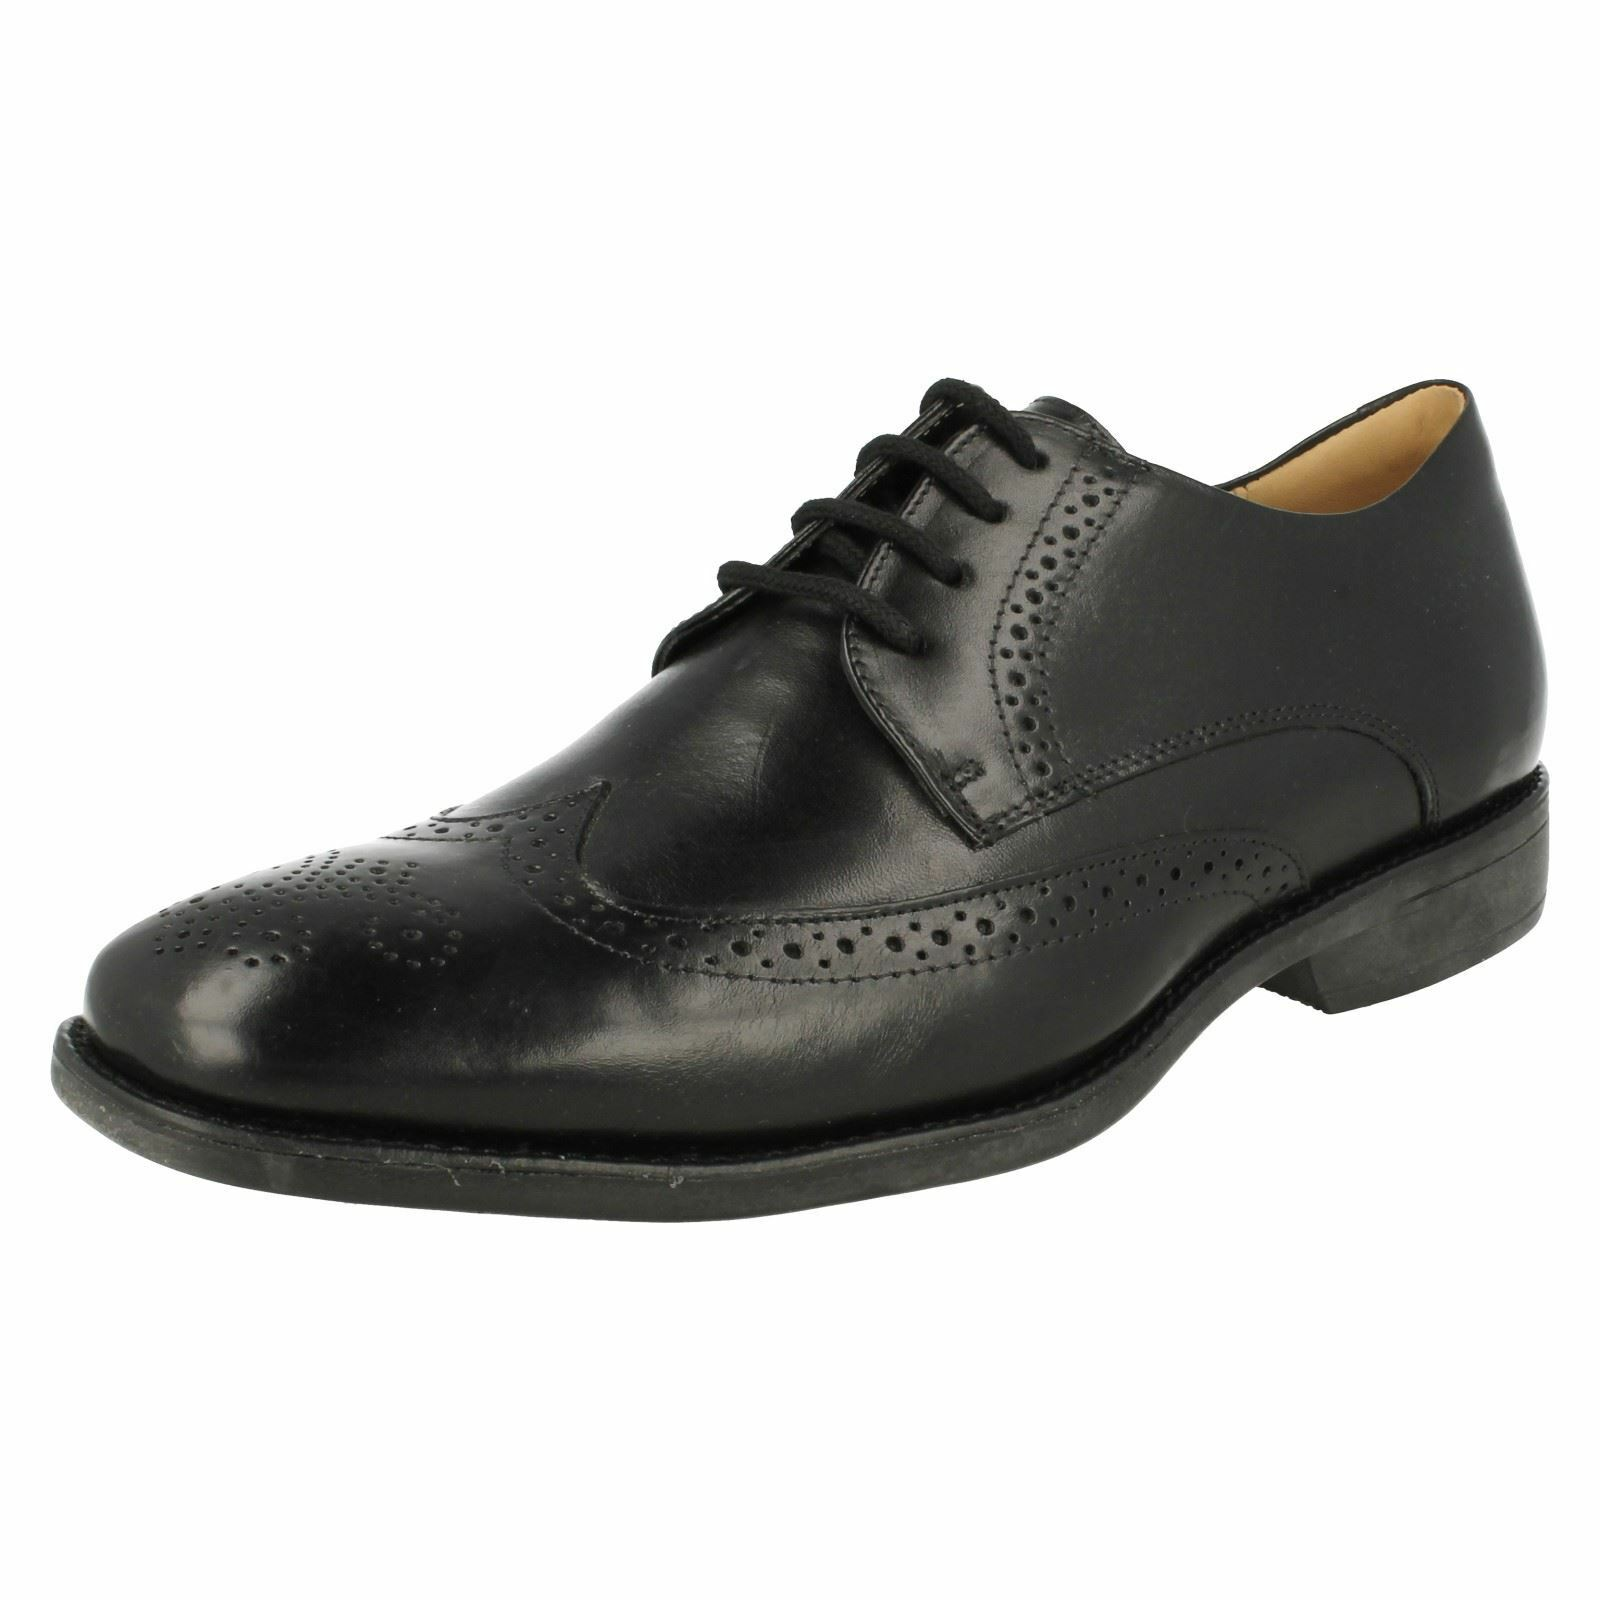 Uomo Anatomic Mococa Smart Brogue Schuhes